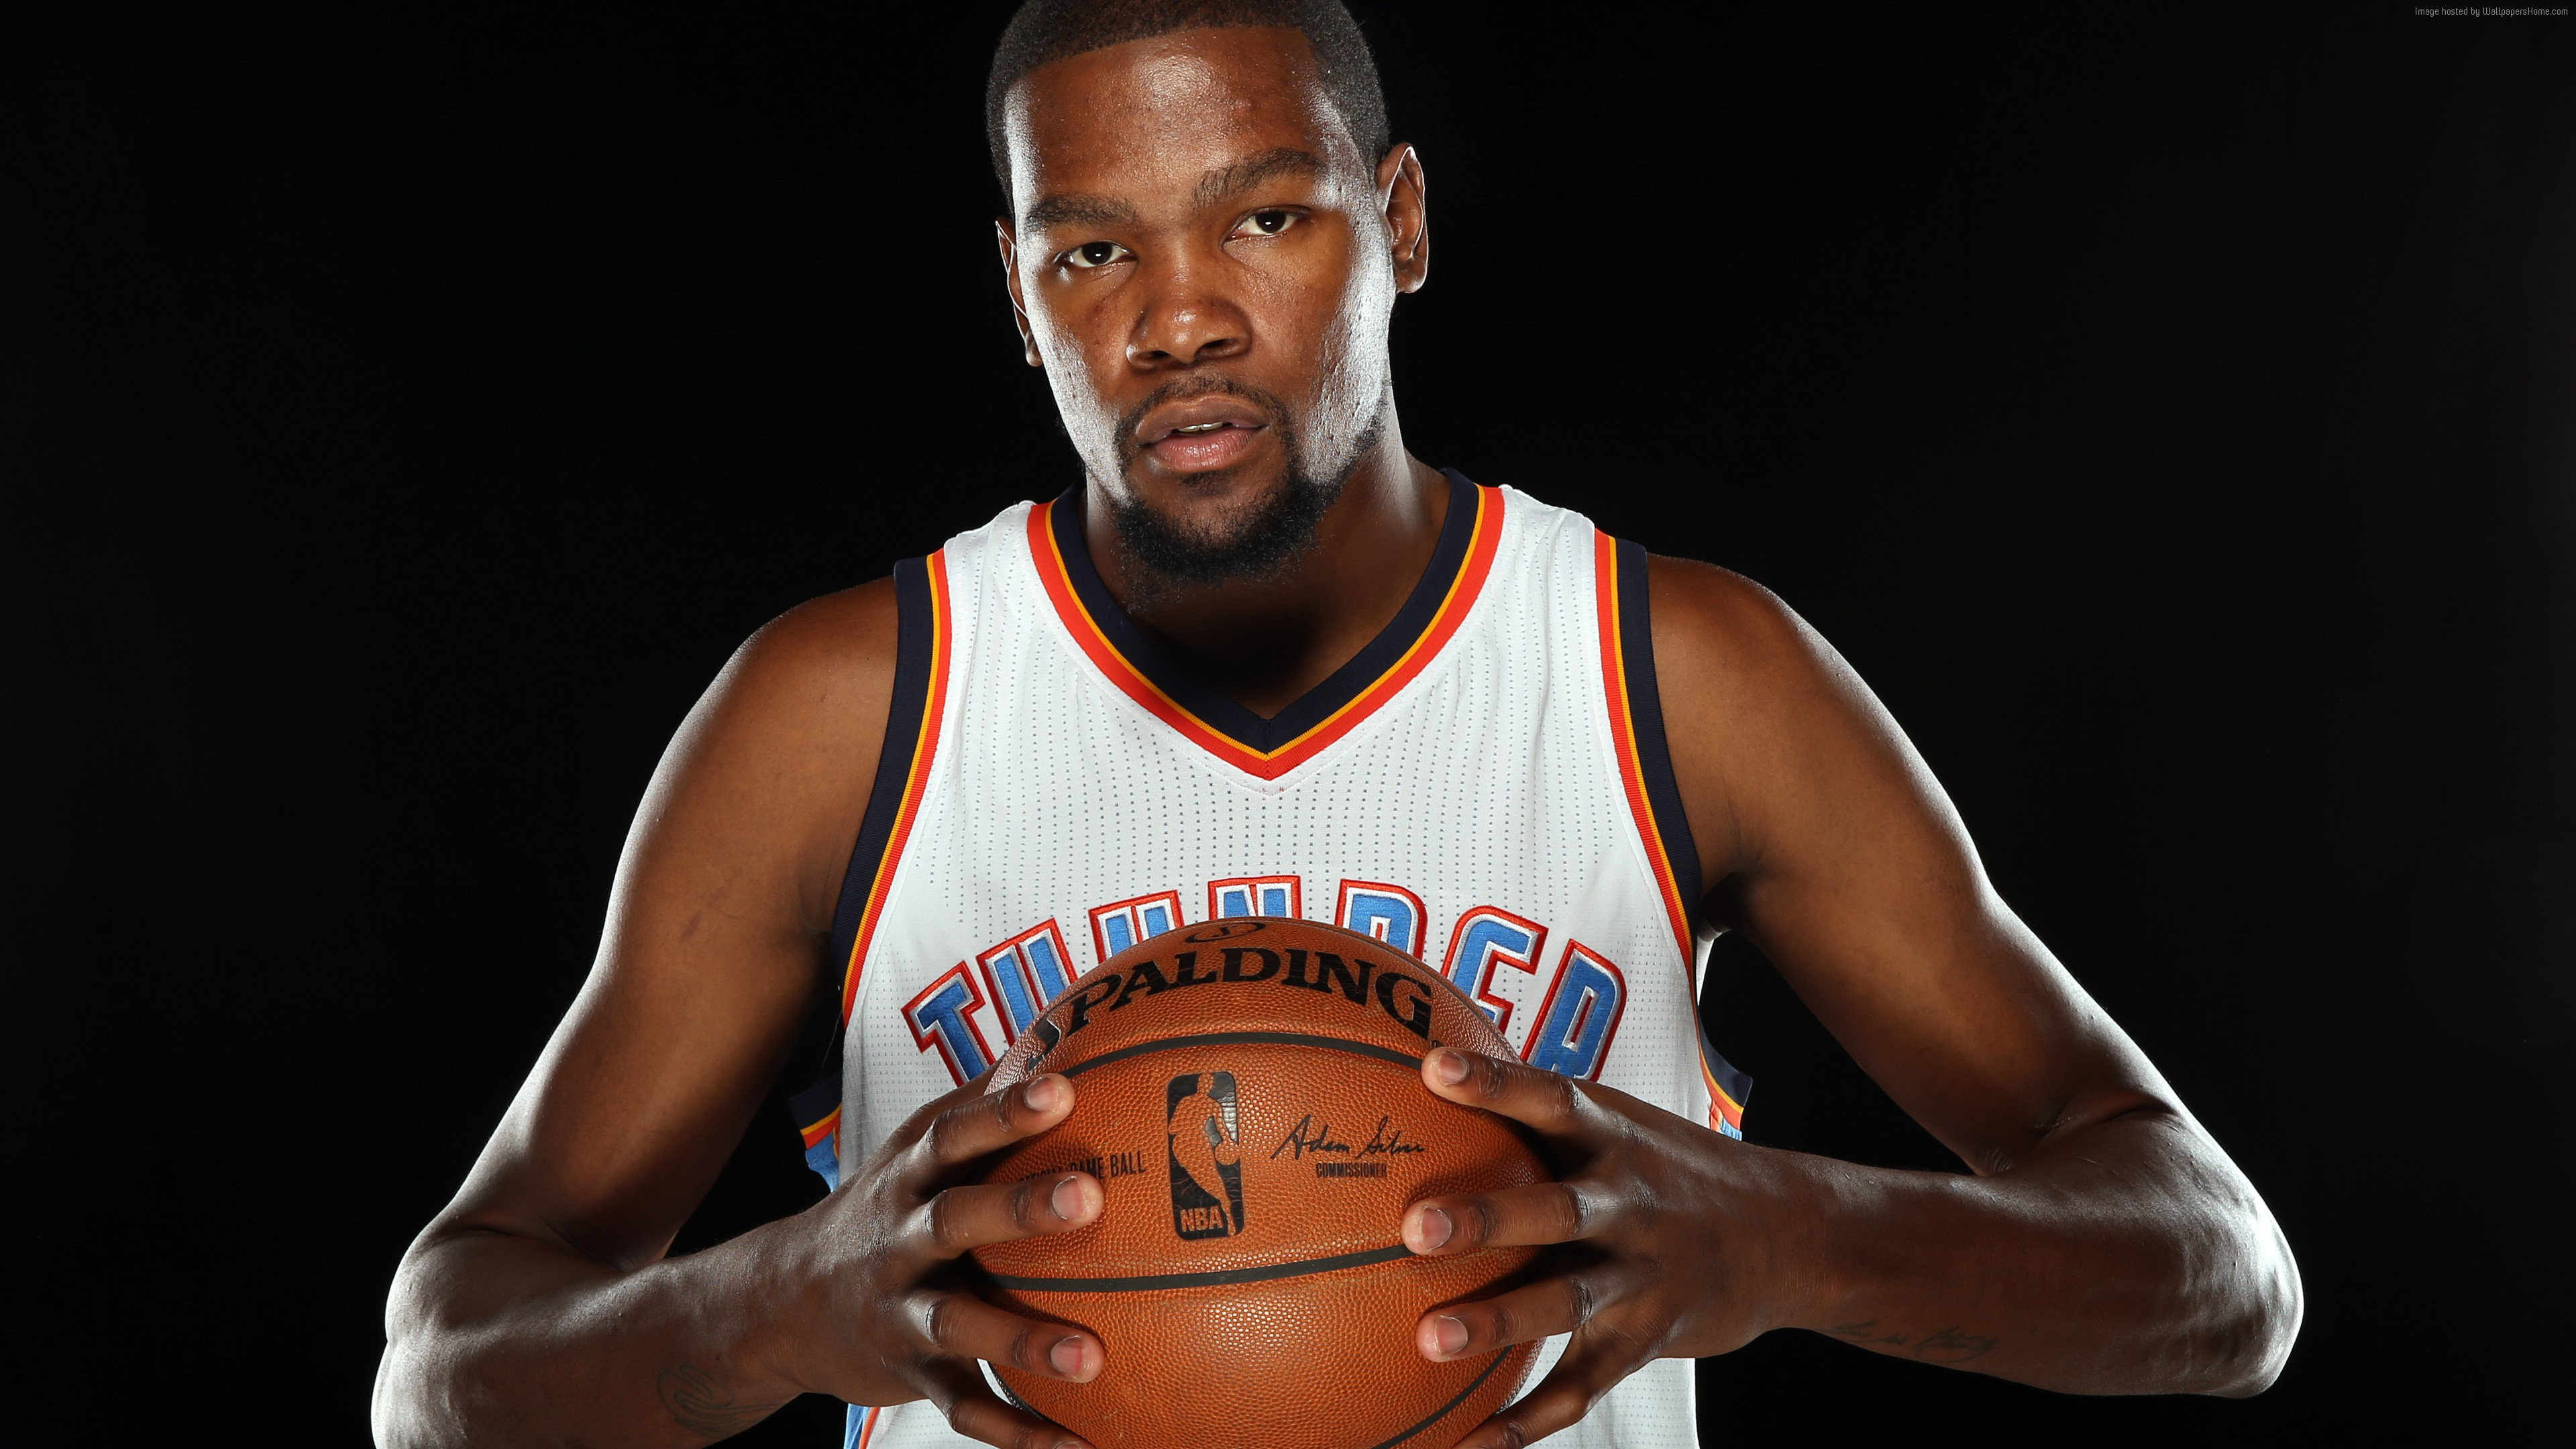 Wallpaper Kevin Durant, Basketball, NBA, The best players ...